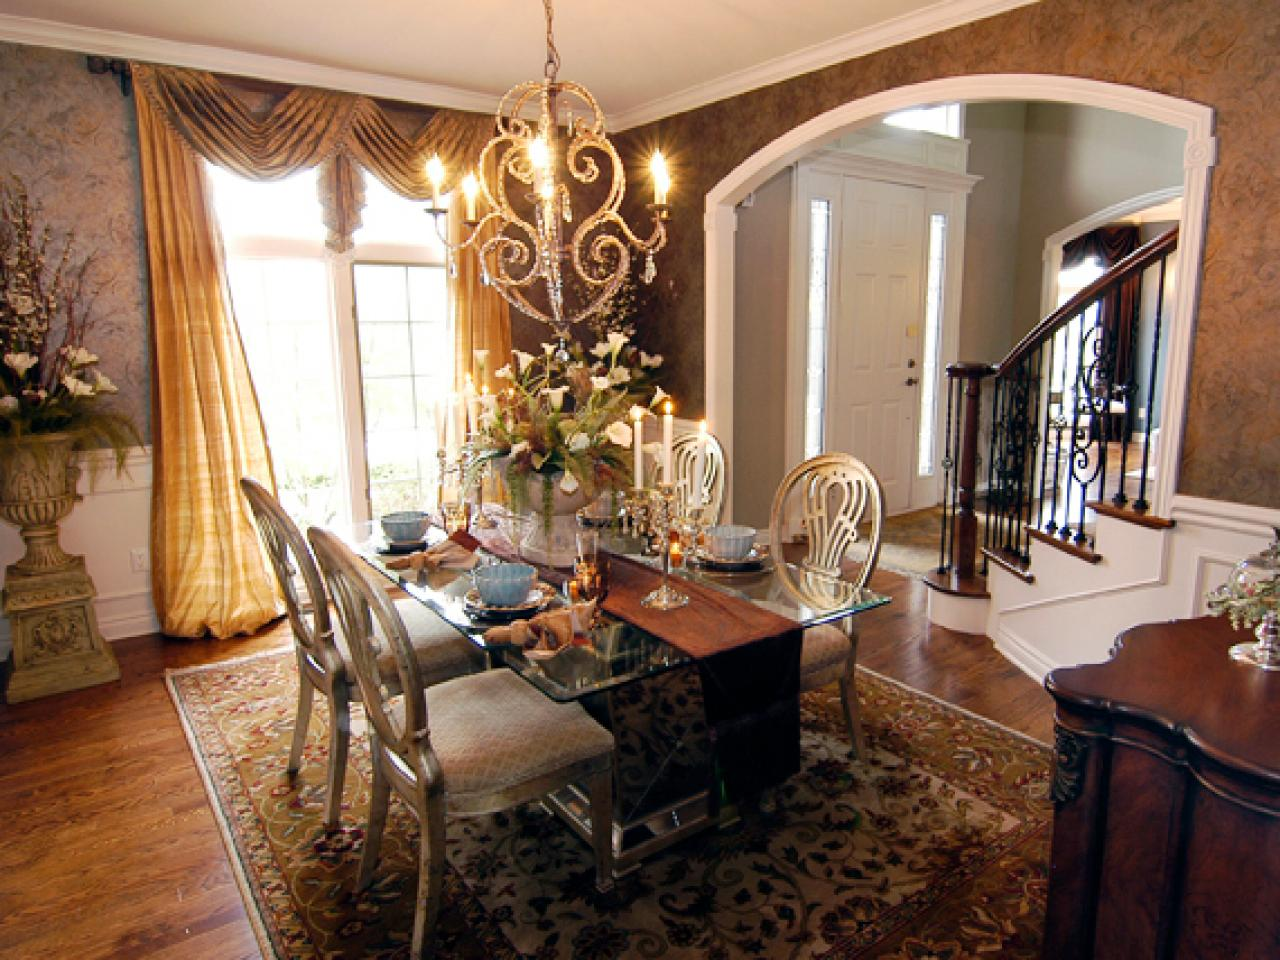 Budget friendly dining room updates from expert designers for Dining room living room ideas